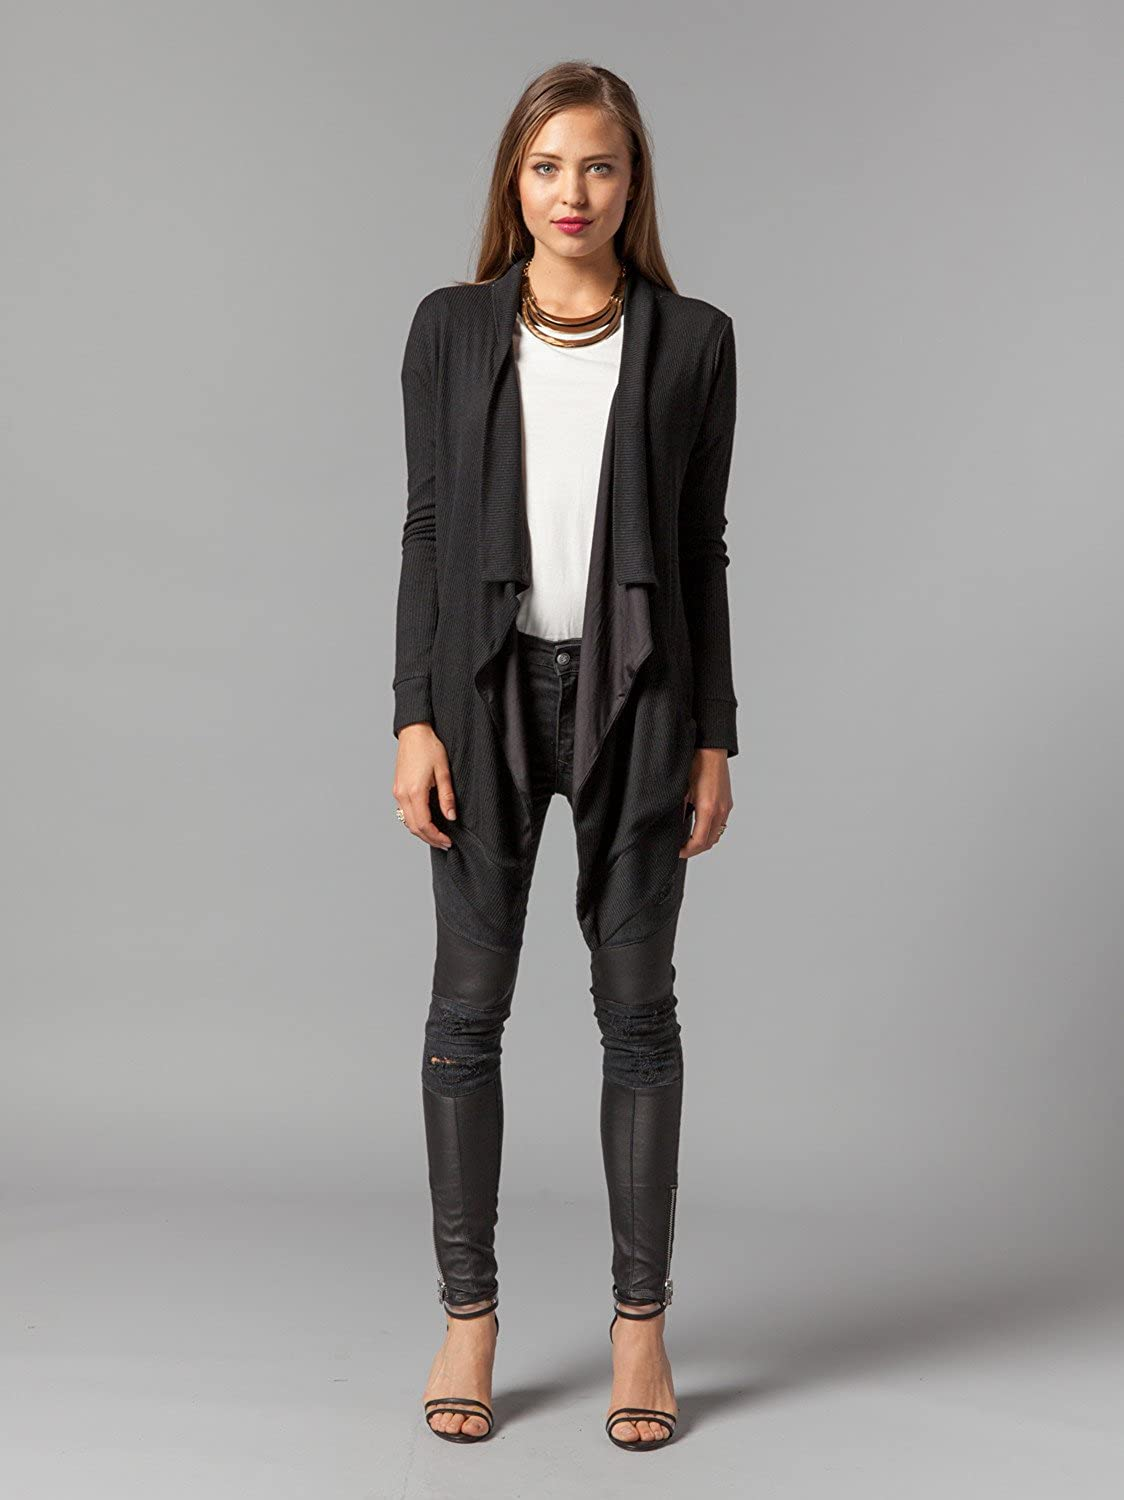 Lovers + Friends Women's Black Ellis Knit Cardigan